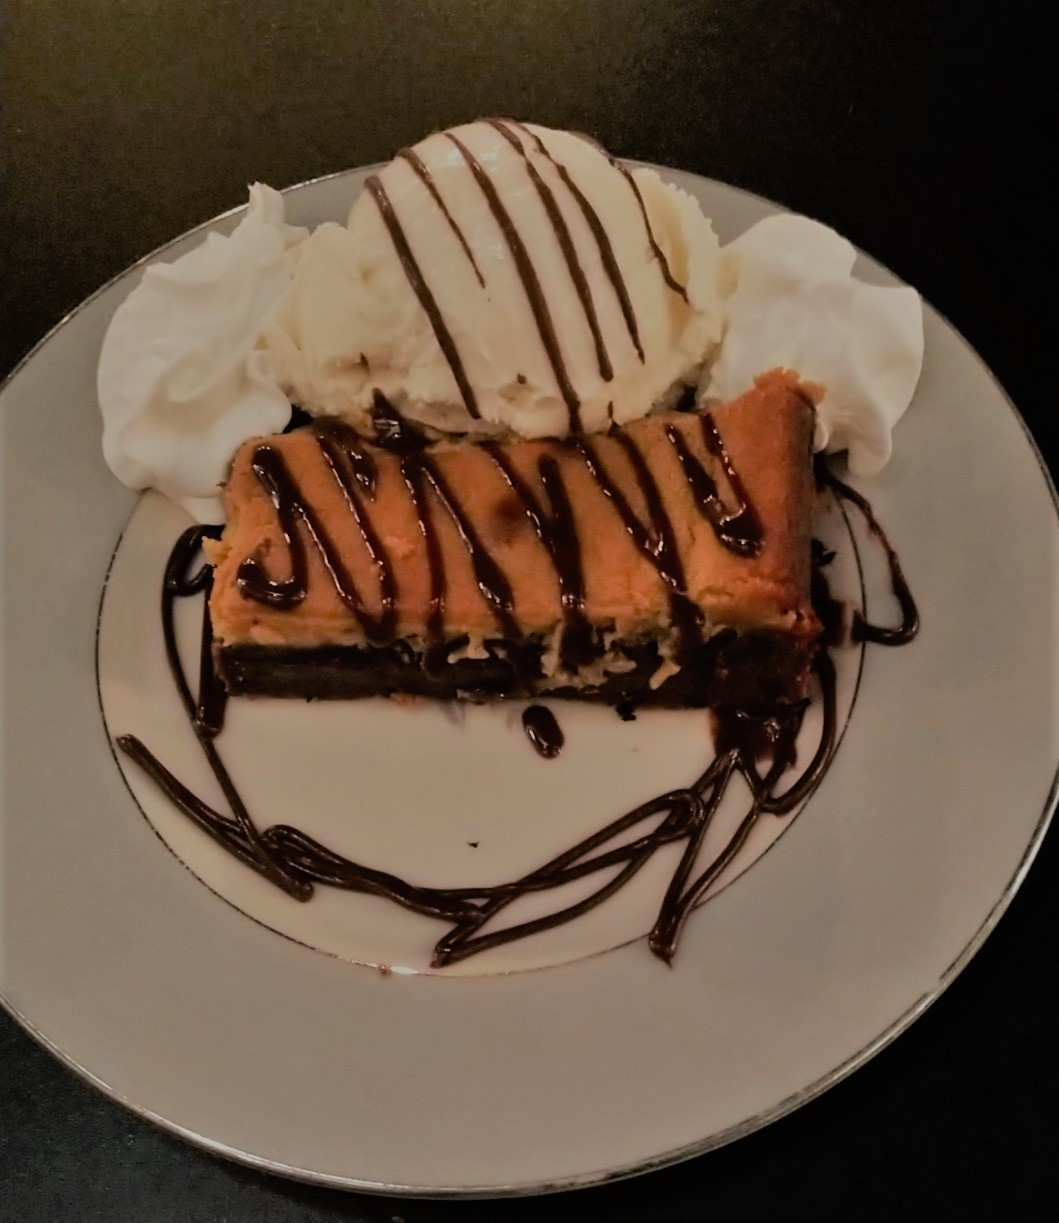 The Best Places For Dessert In Savannah Georgia